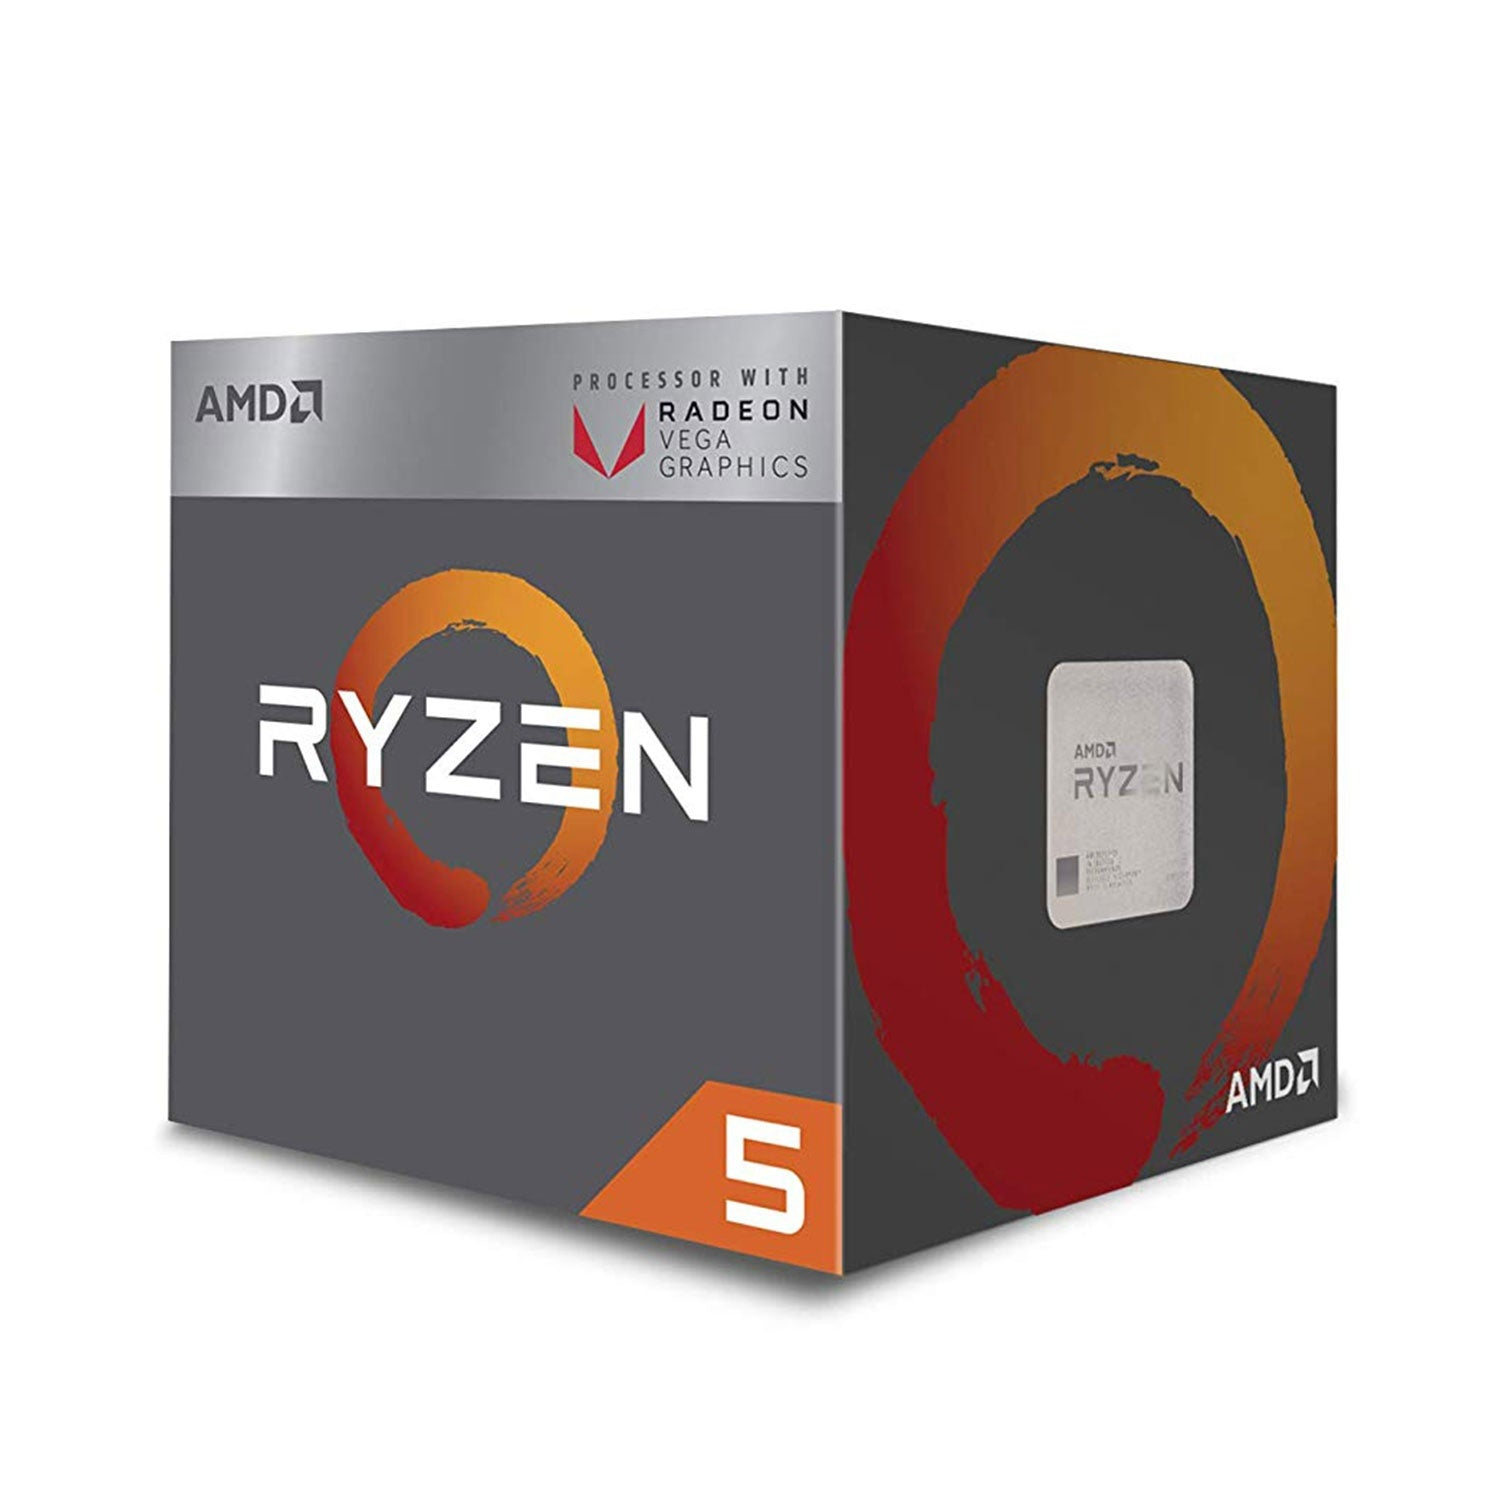 AMD Ryzen 5 2400G with Radeon RX Vega 11